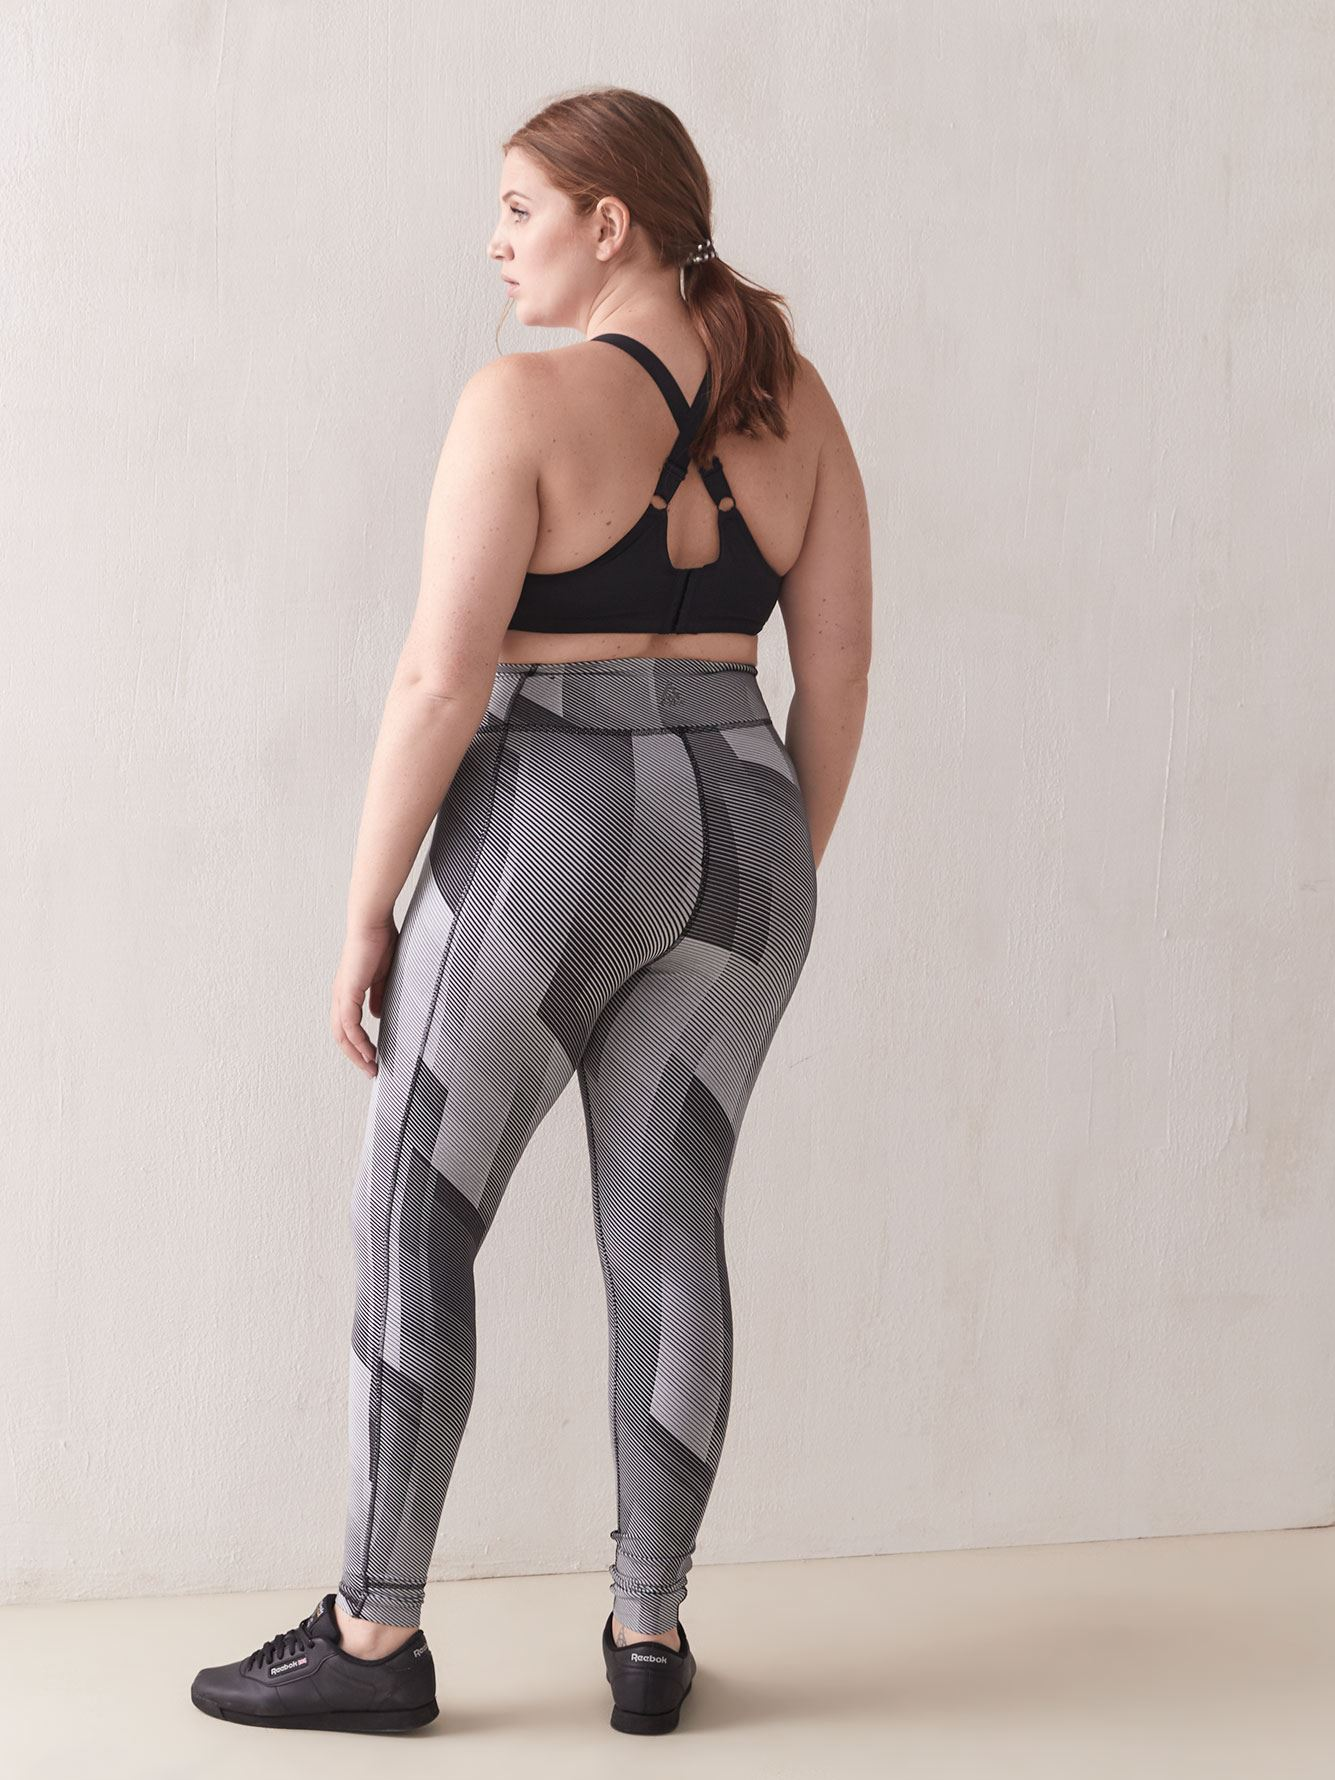 2.0 Vertical Disruption Lux Legging - Reebok